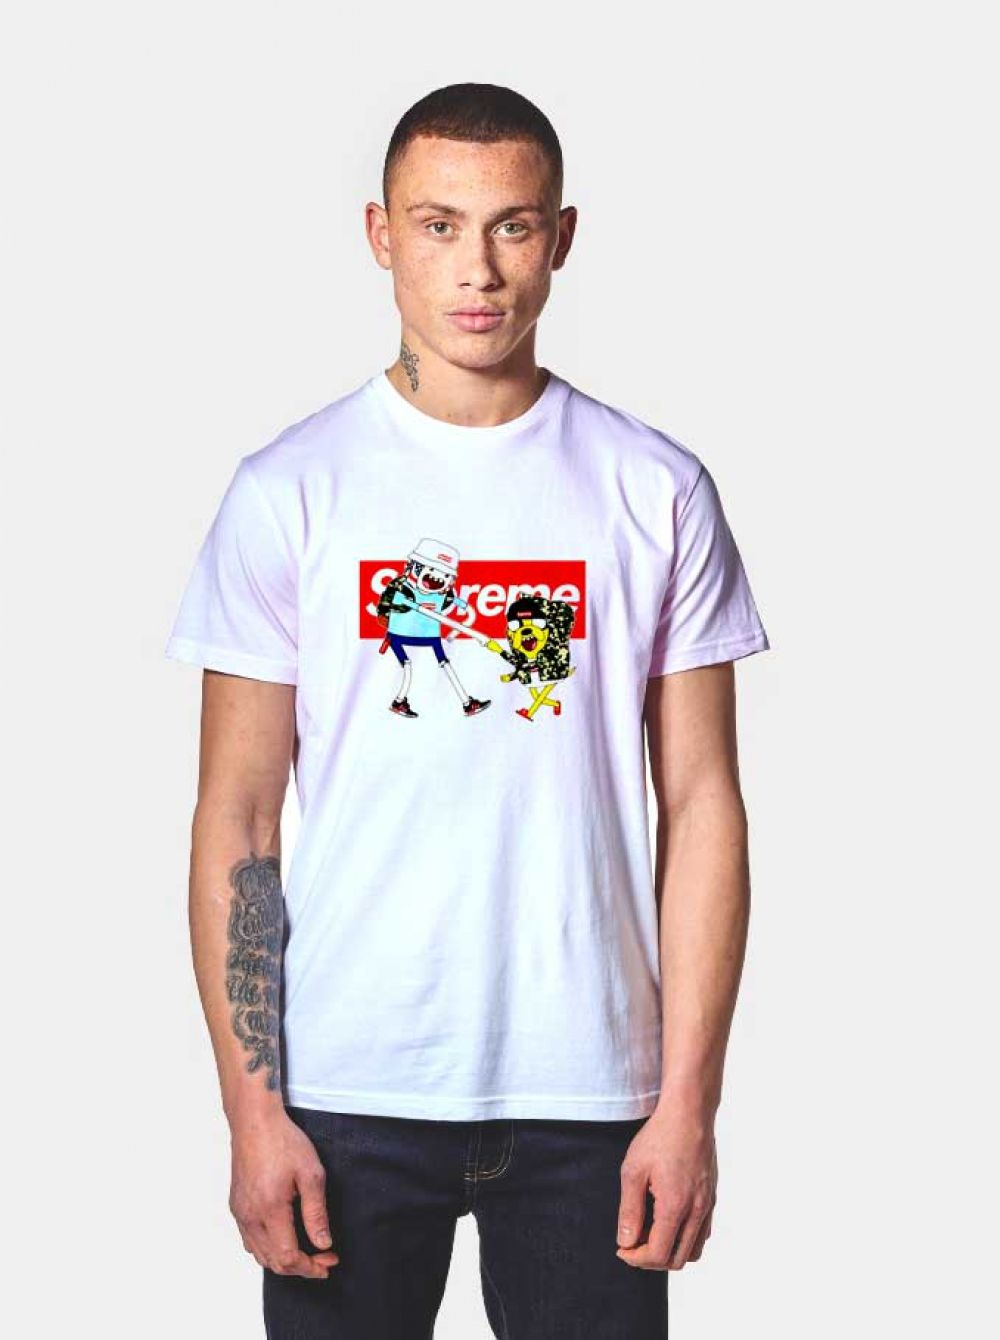 f766e0b3fbe3 Adventure Time Finn & Jake Supreme T Shirt $ 14.50 #Tee #Hype #Outfits  #Outfit #Hypebeast #fashion #shirt #Tees #Tops #Teen